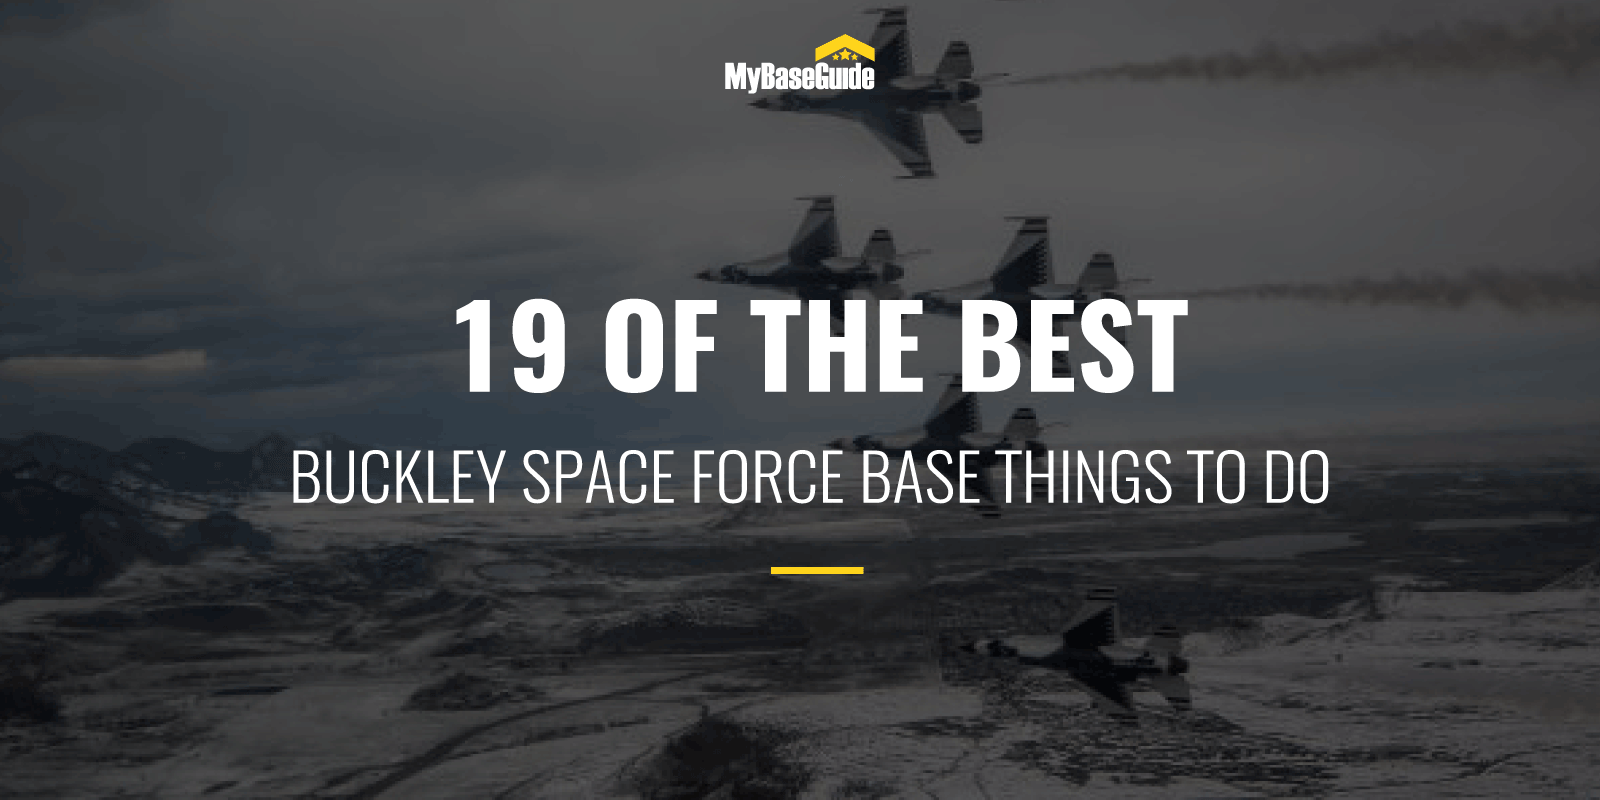 19 Of the Best Buckley AFB Things to Do